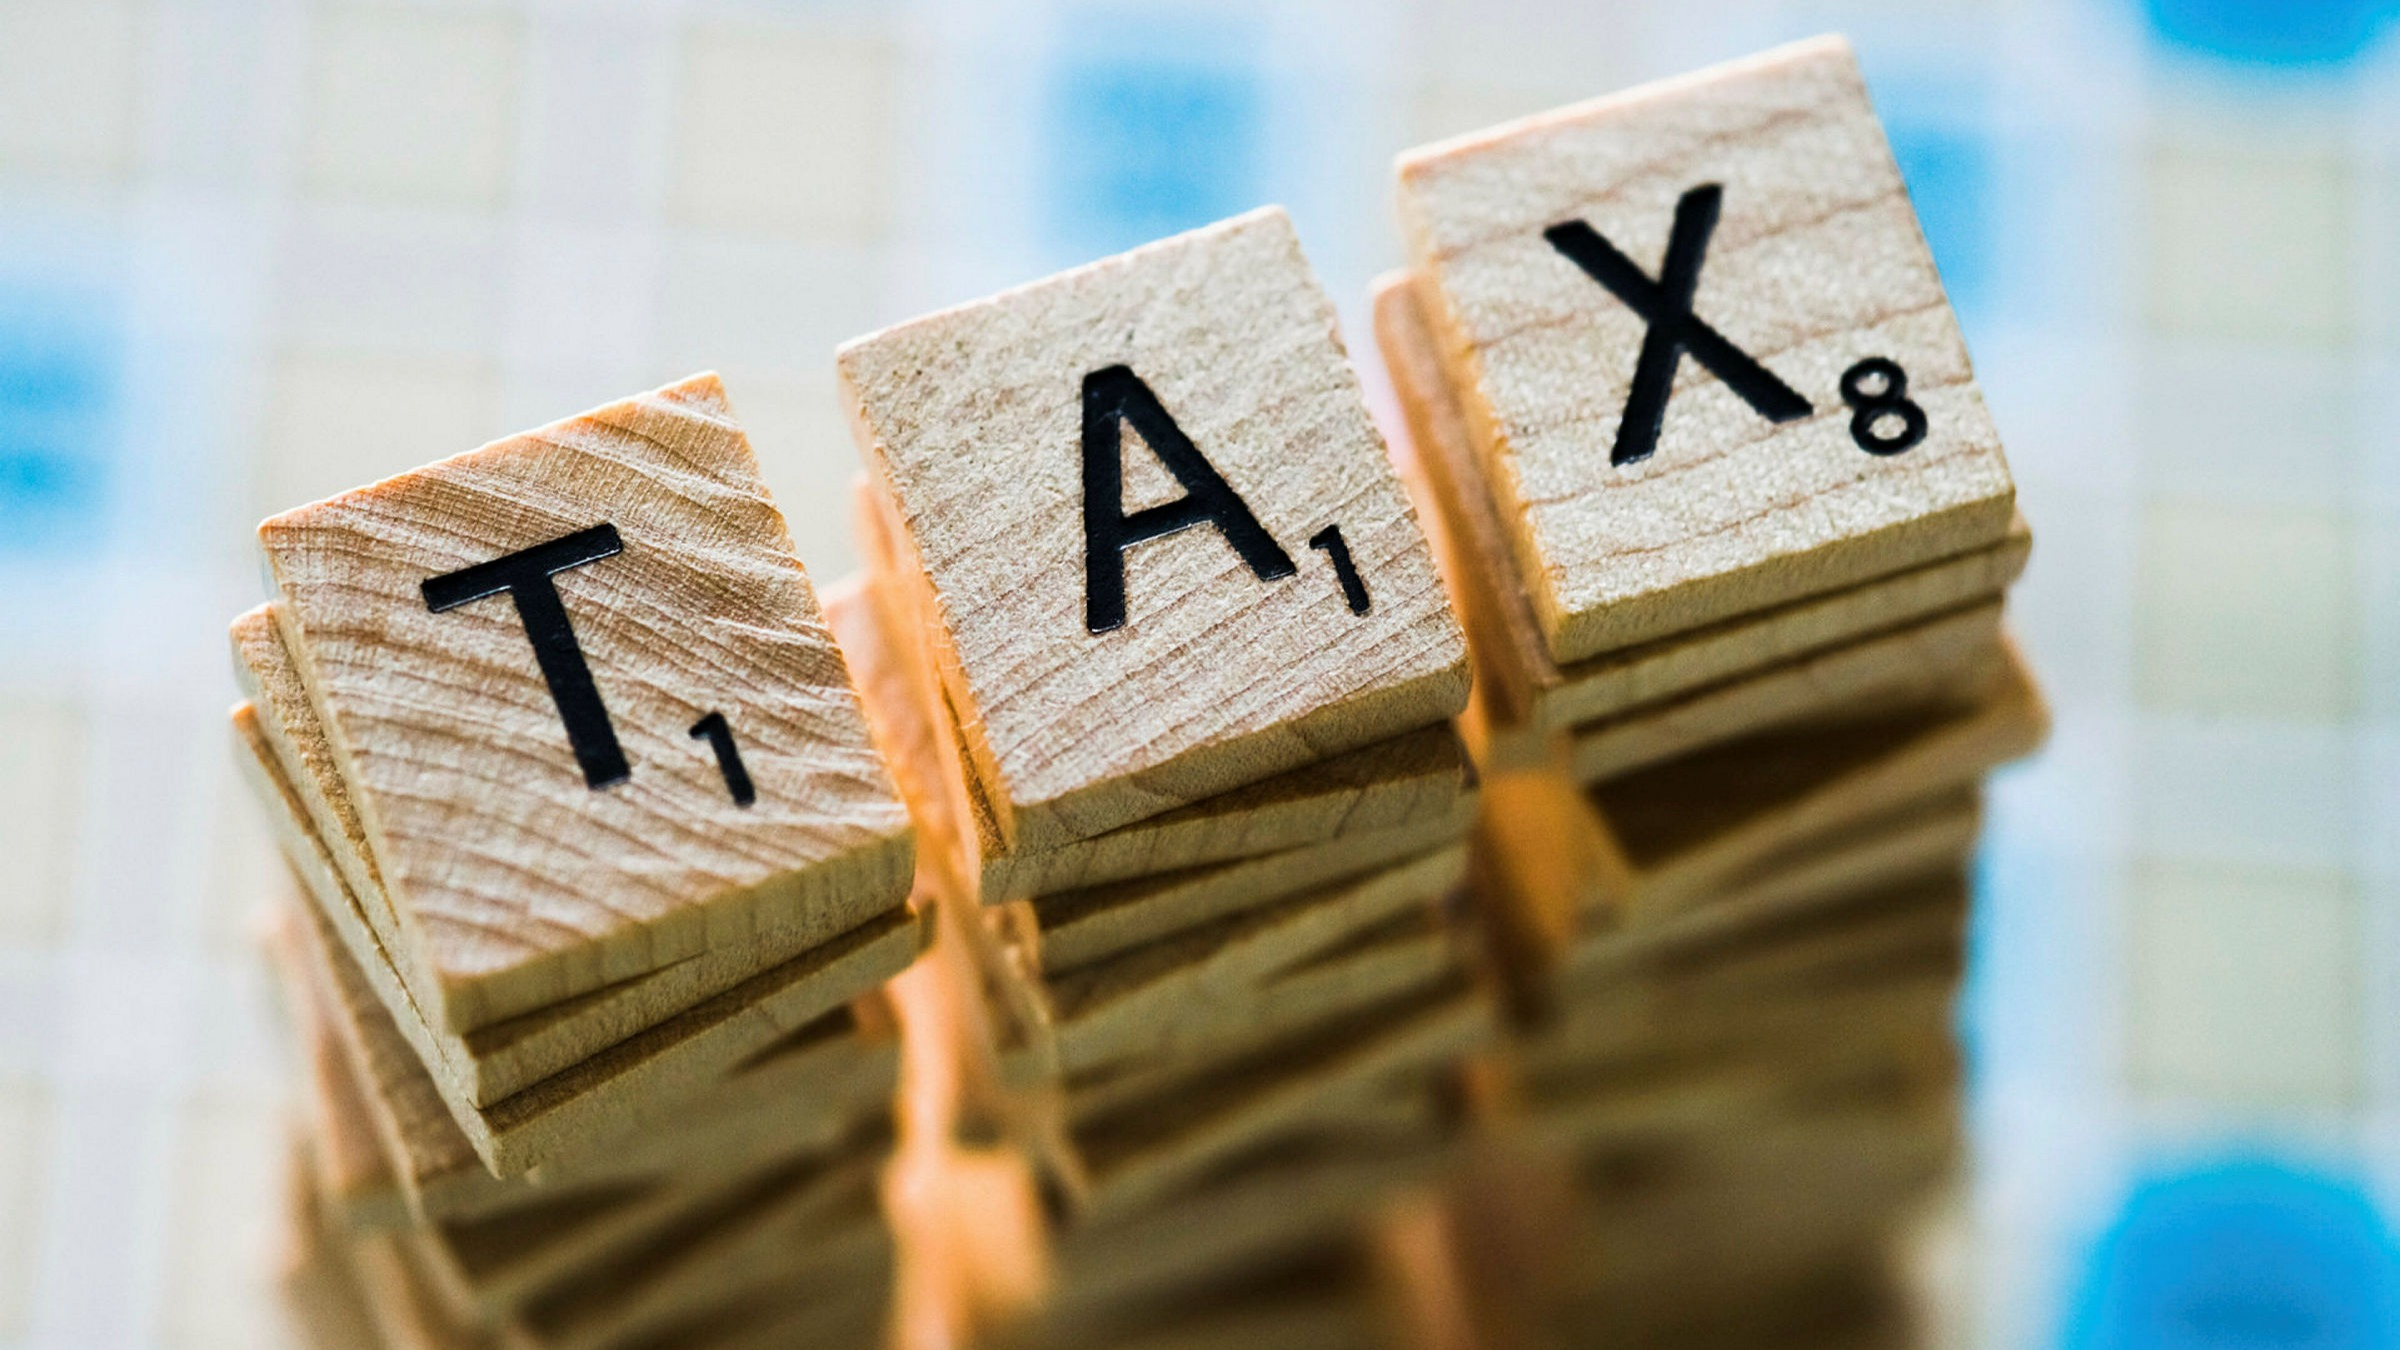 Taking pay cut 'could trigger a tax bill' | Financial Times